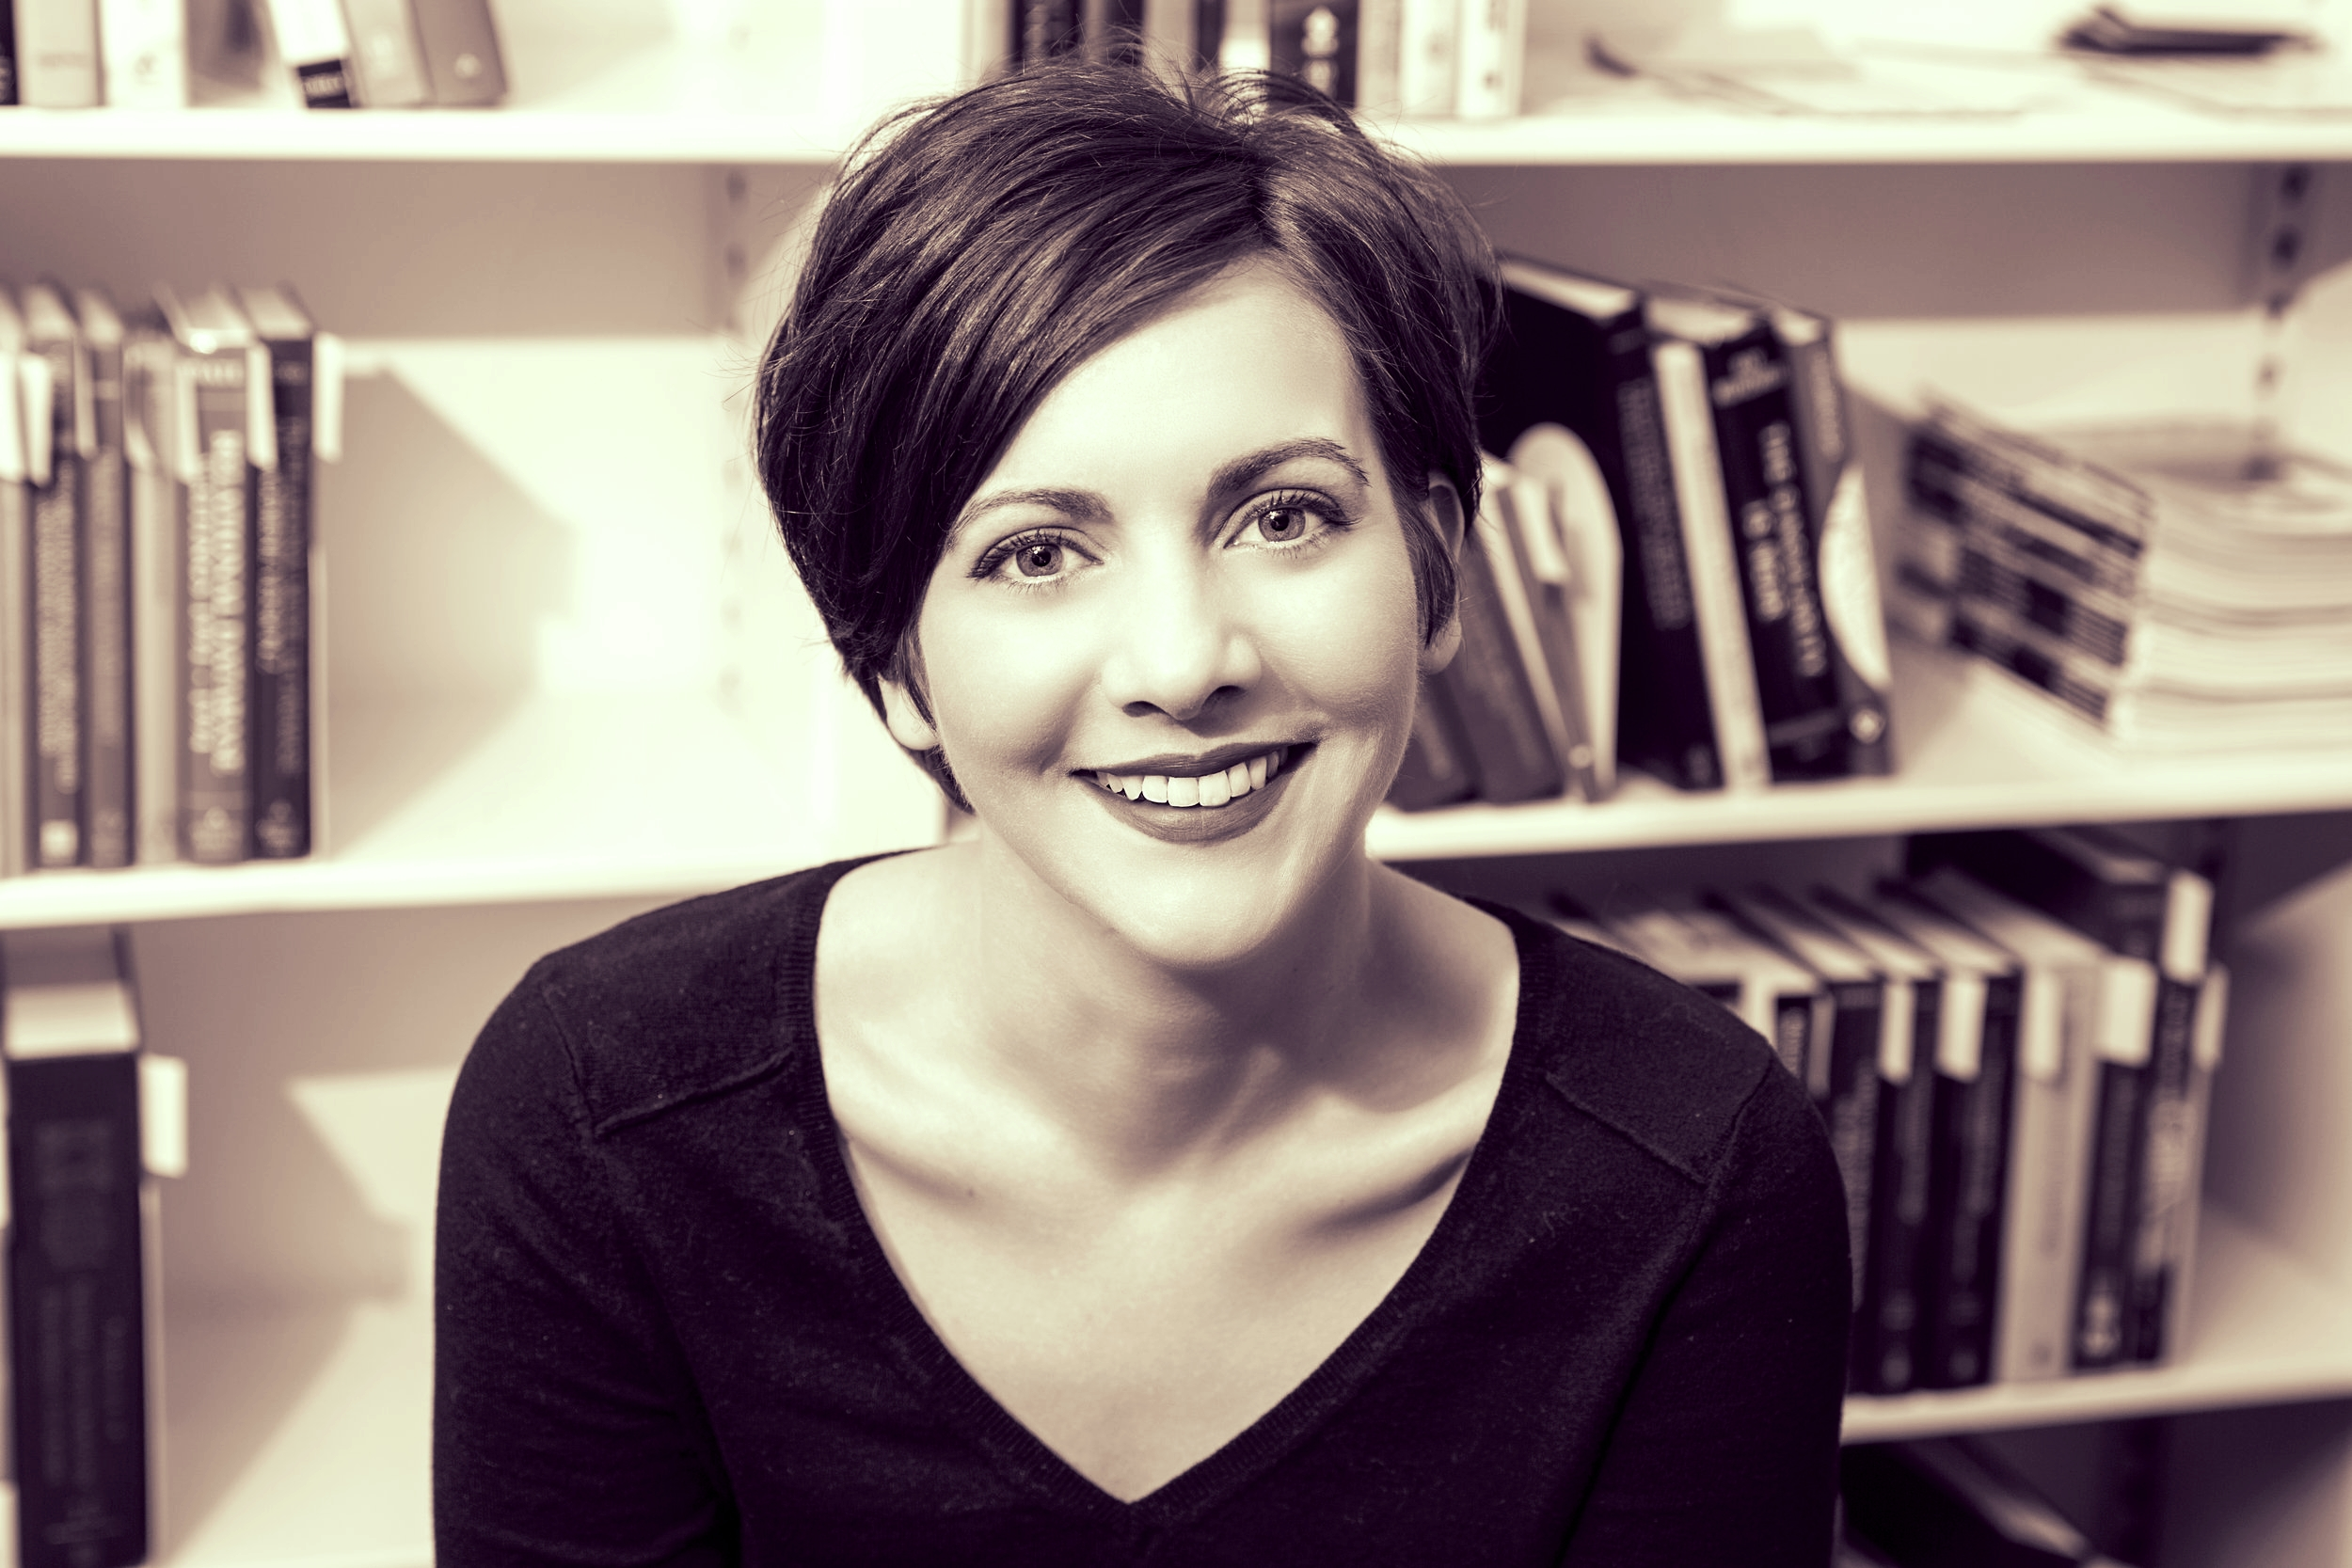 Natalie french - I'm so excited to work with the team at Wanderword. The interactive capabilities of the platform and editor mixed with audio-books will unlock an entirely new toolkit for authors to tell amazing stories. Wanderword will reach new levels of immersion in storytelling, with the reader now becoming a participant, a partner, with the characters. I can't wait for everyone to visit the corner of 63rd & Wallace with me, and shape the story as they play.